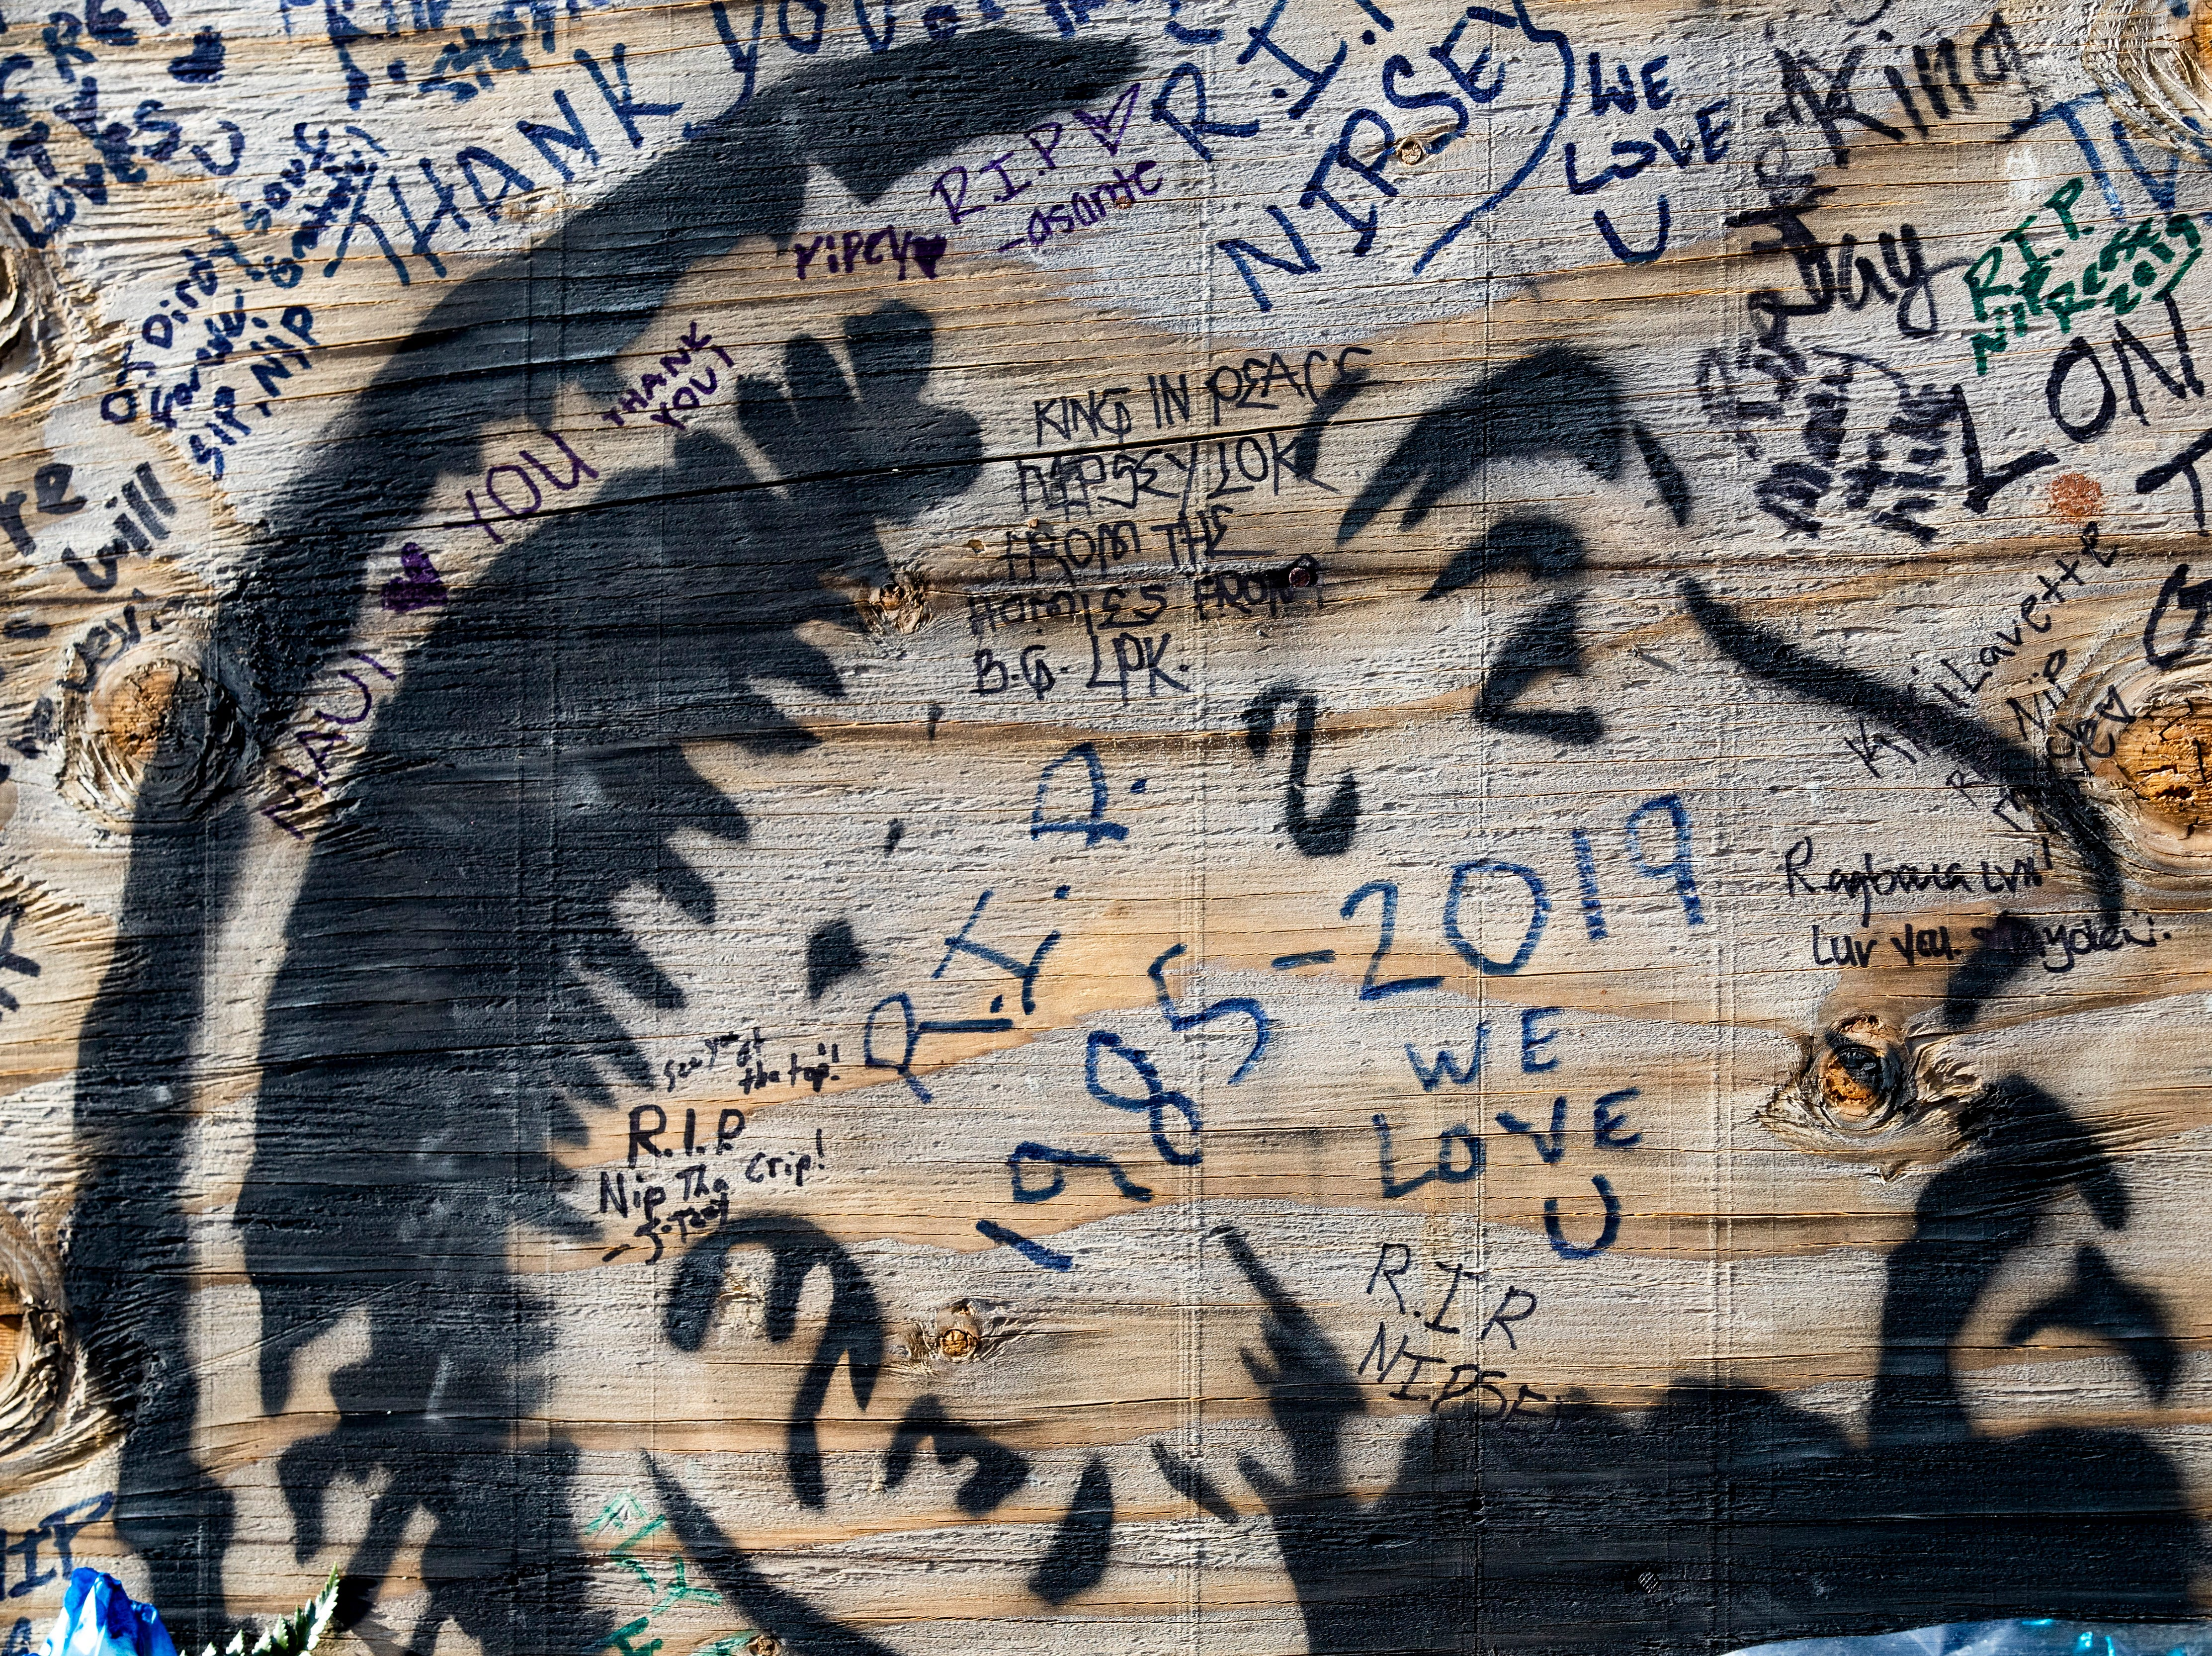 A portrait of rapper Nipsey Hussle is drawn on planks of wood near his shop where where he was shot in Los Angeles, Calif. on April 2, 2019.